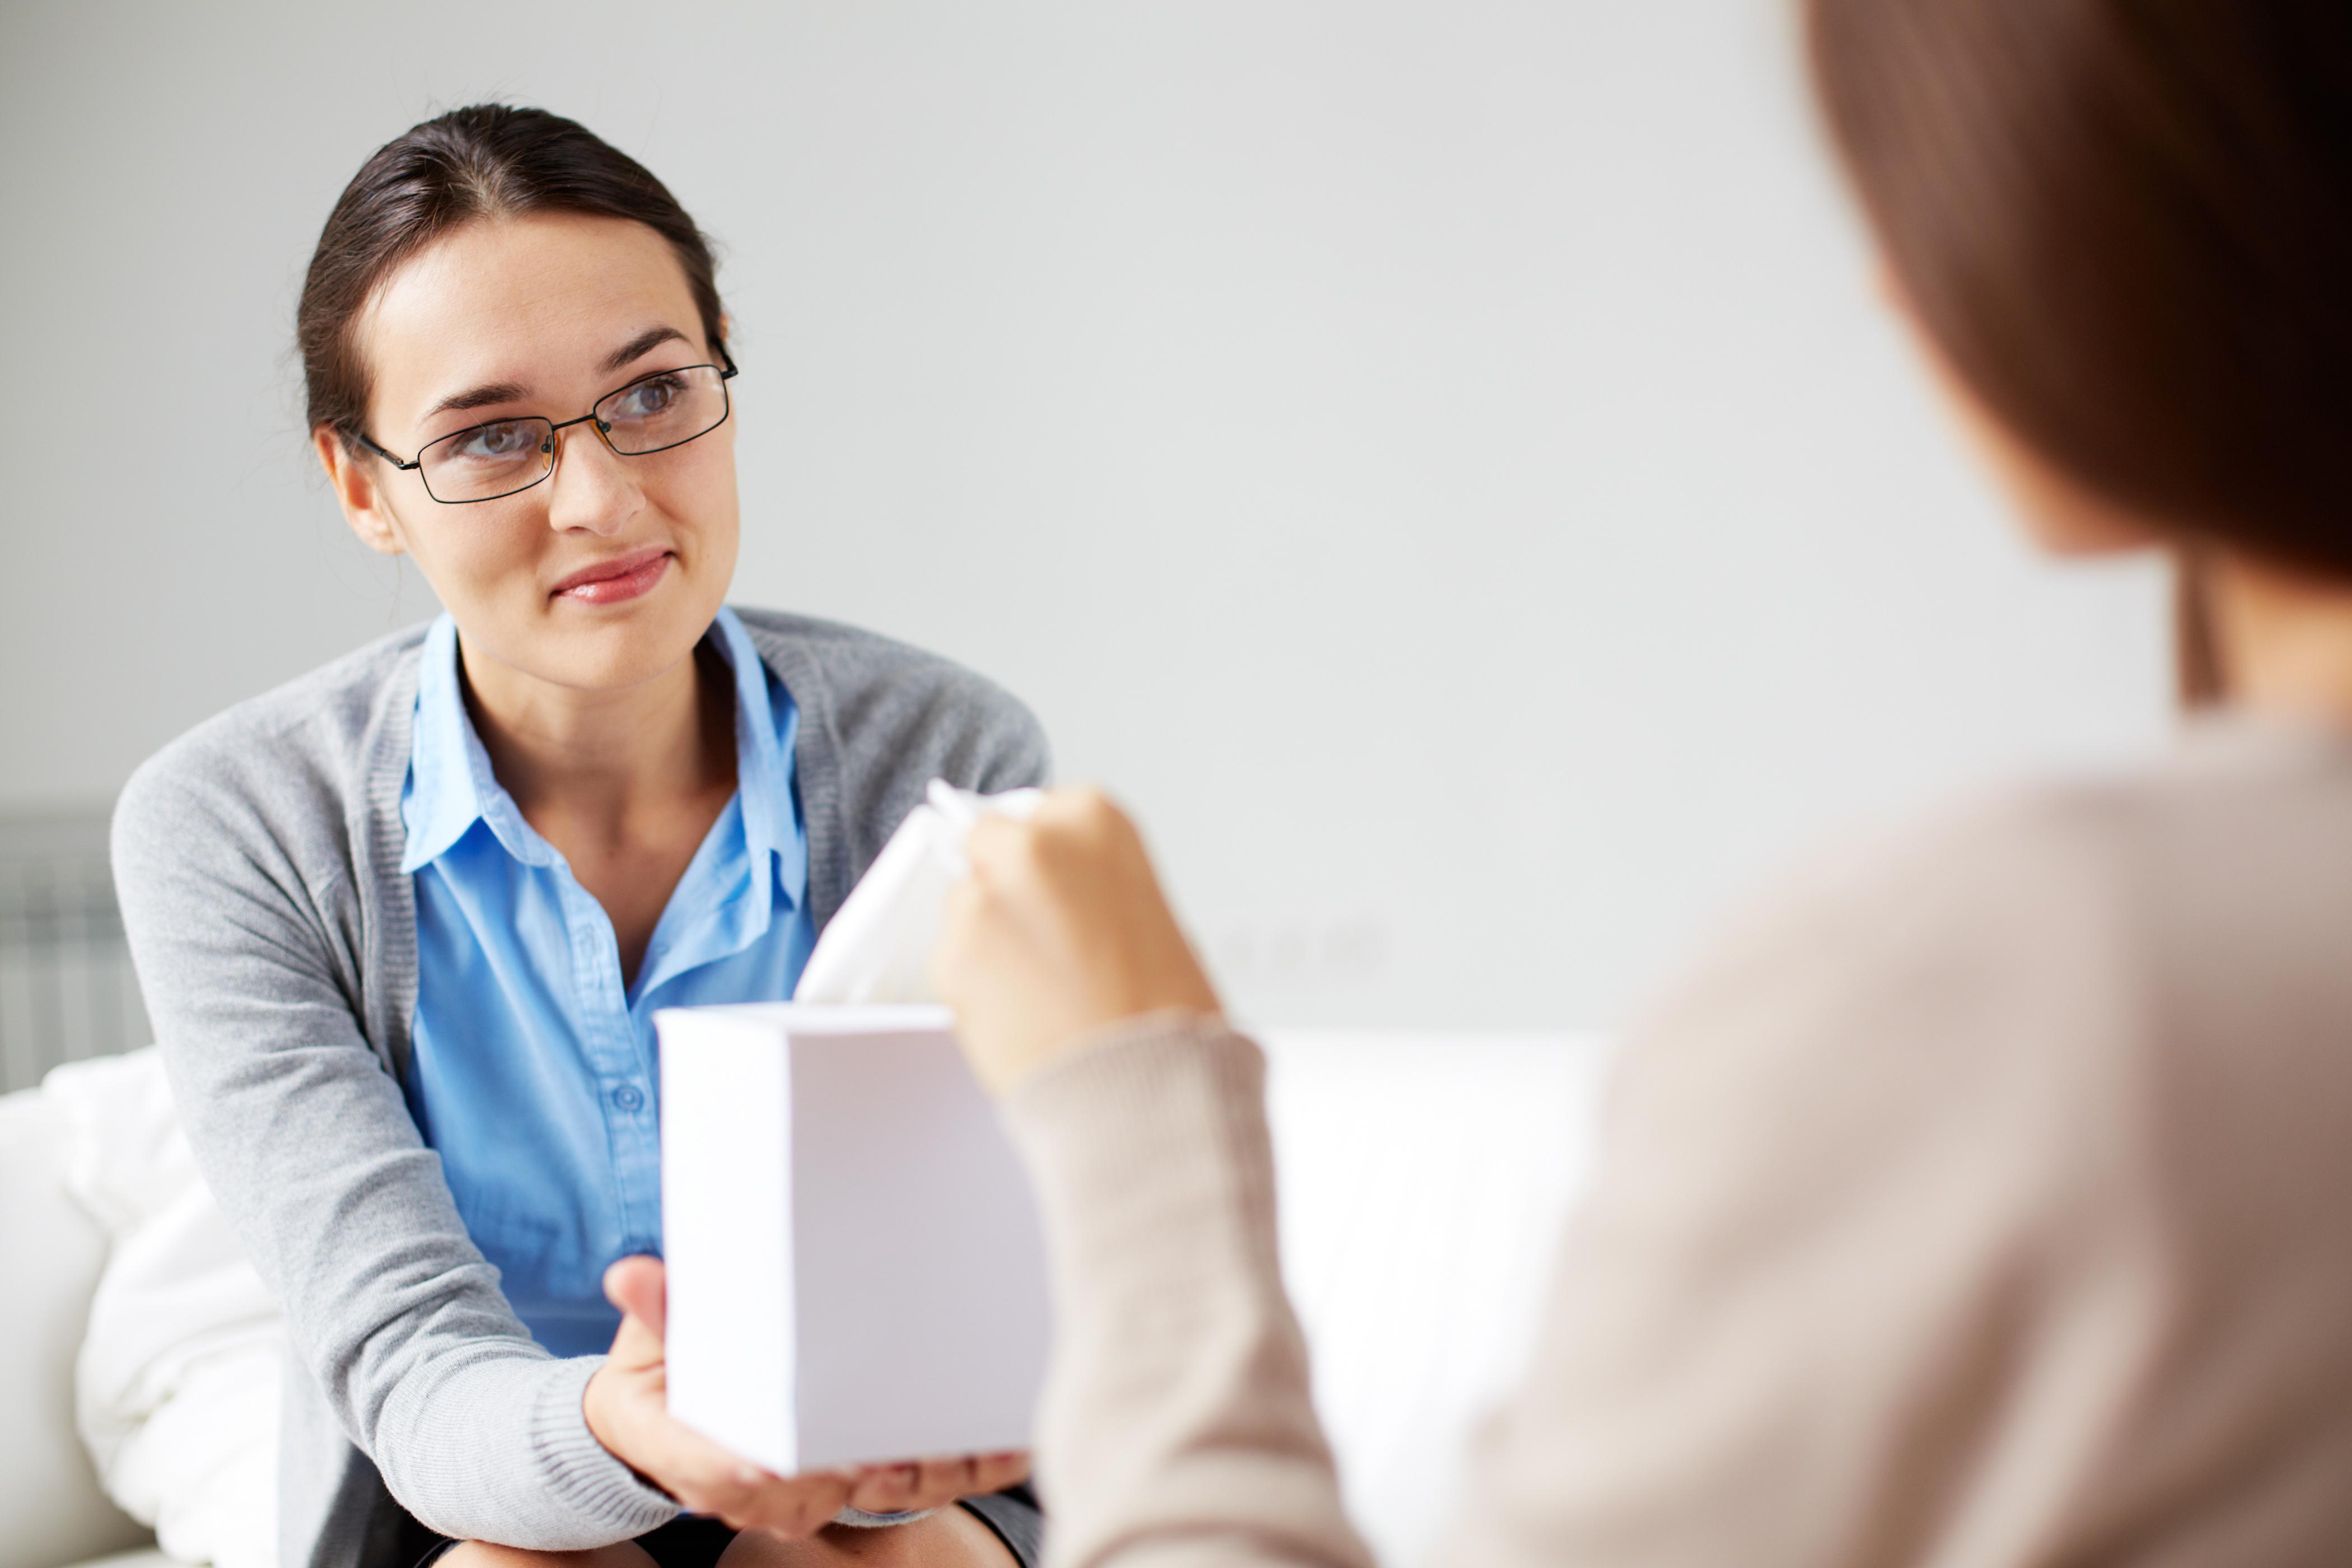 Counselor Holding Tissues for Client